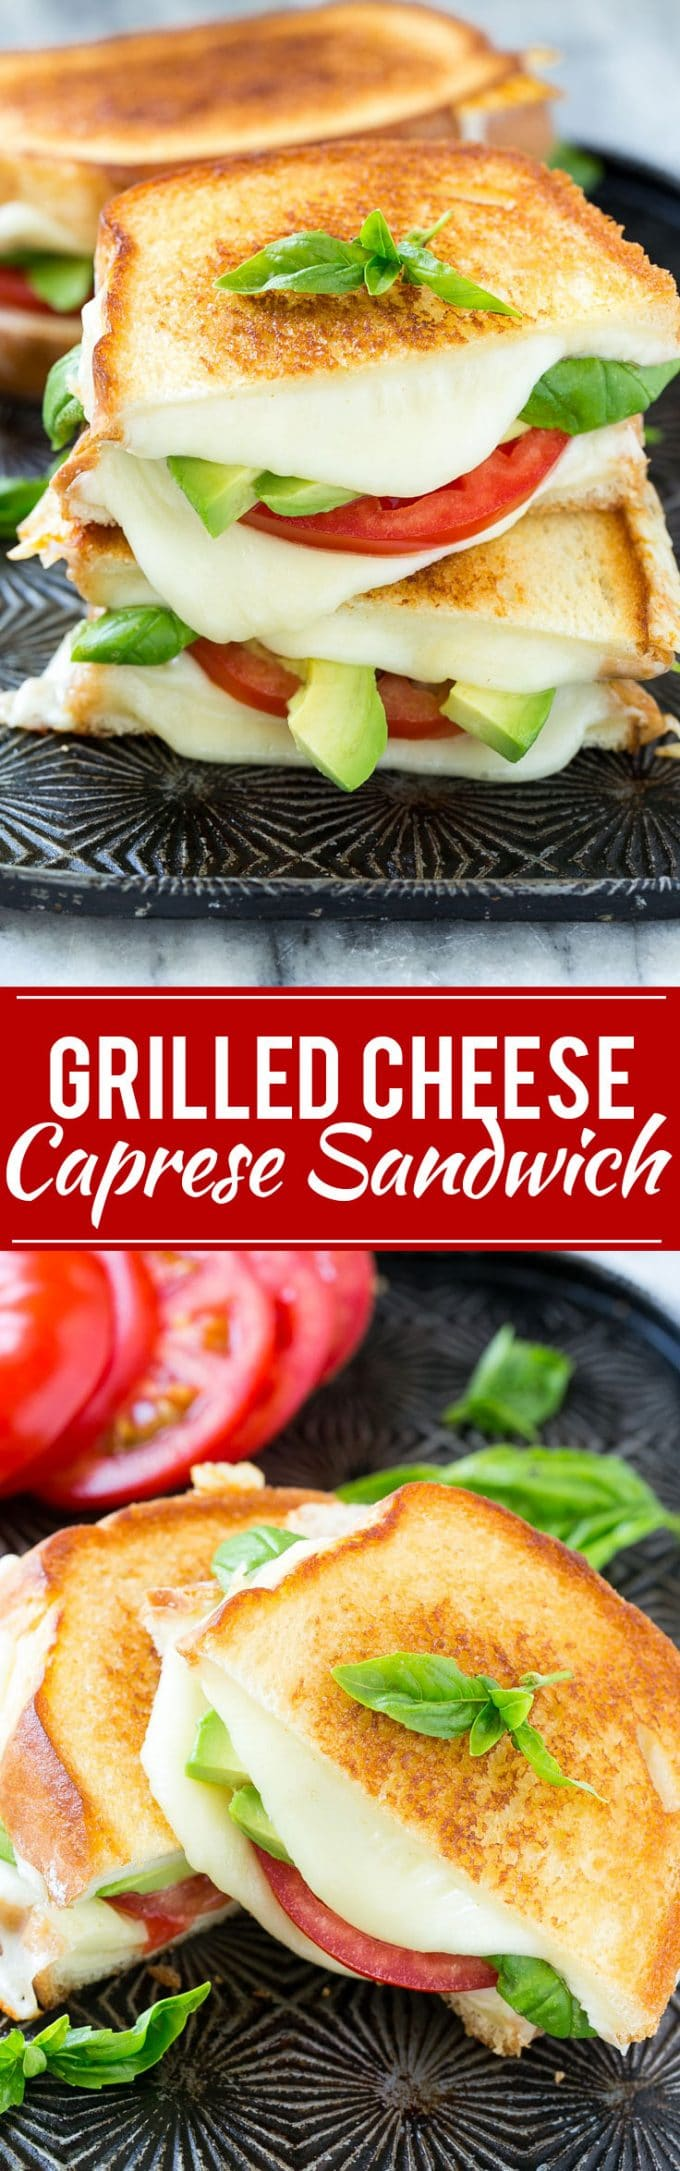 Caprese Sandwich Recipe | Grilled Cheese Sandwich | Grilled Caprese Sandwich | Caprese Recipe